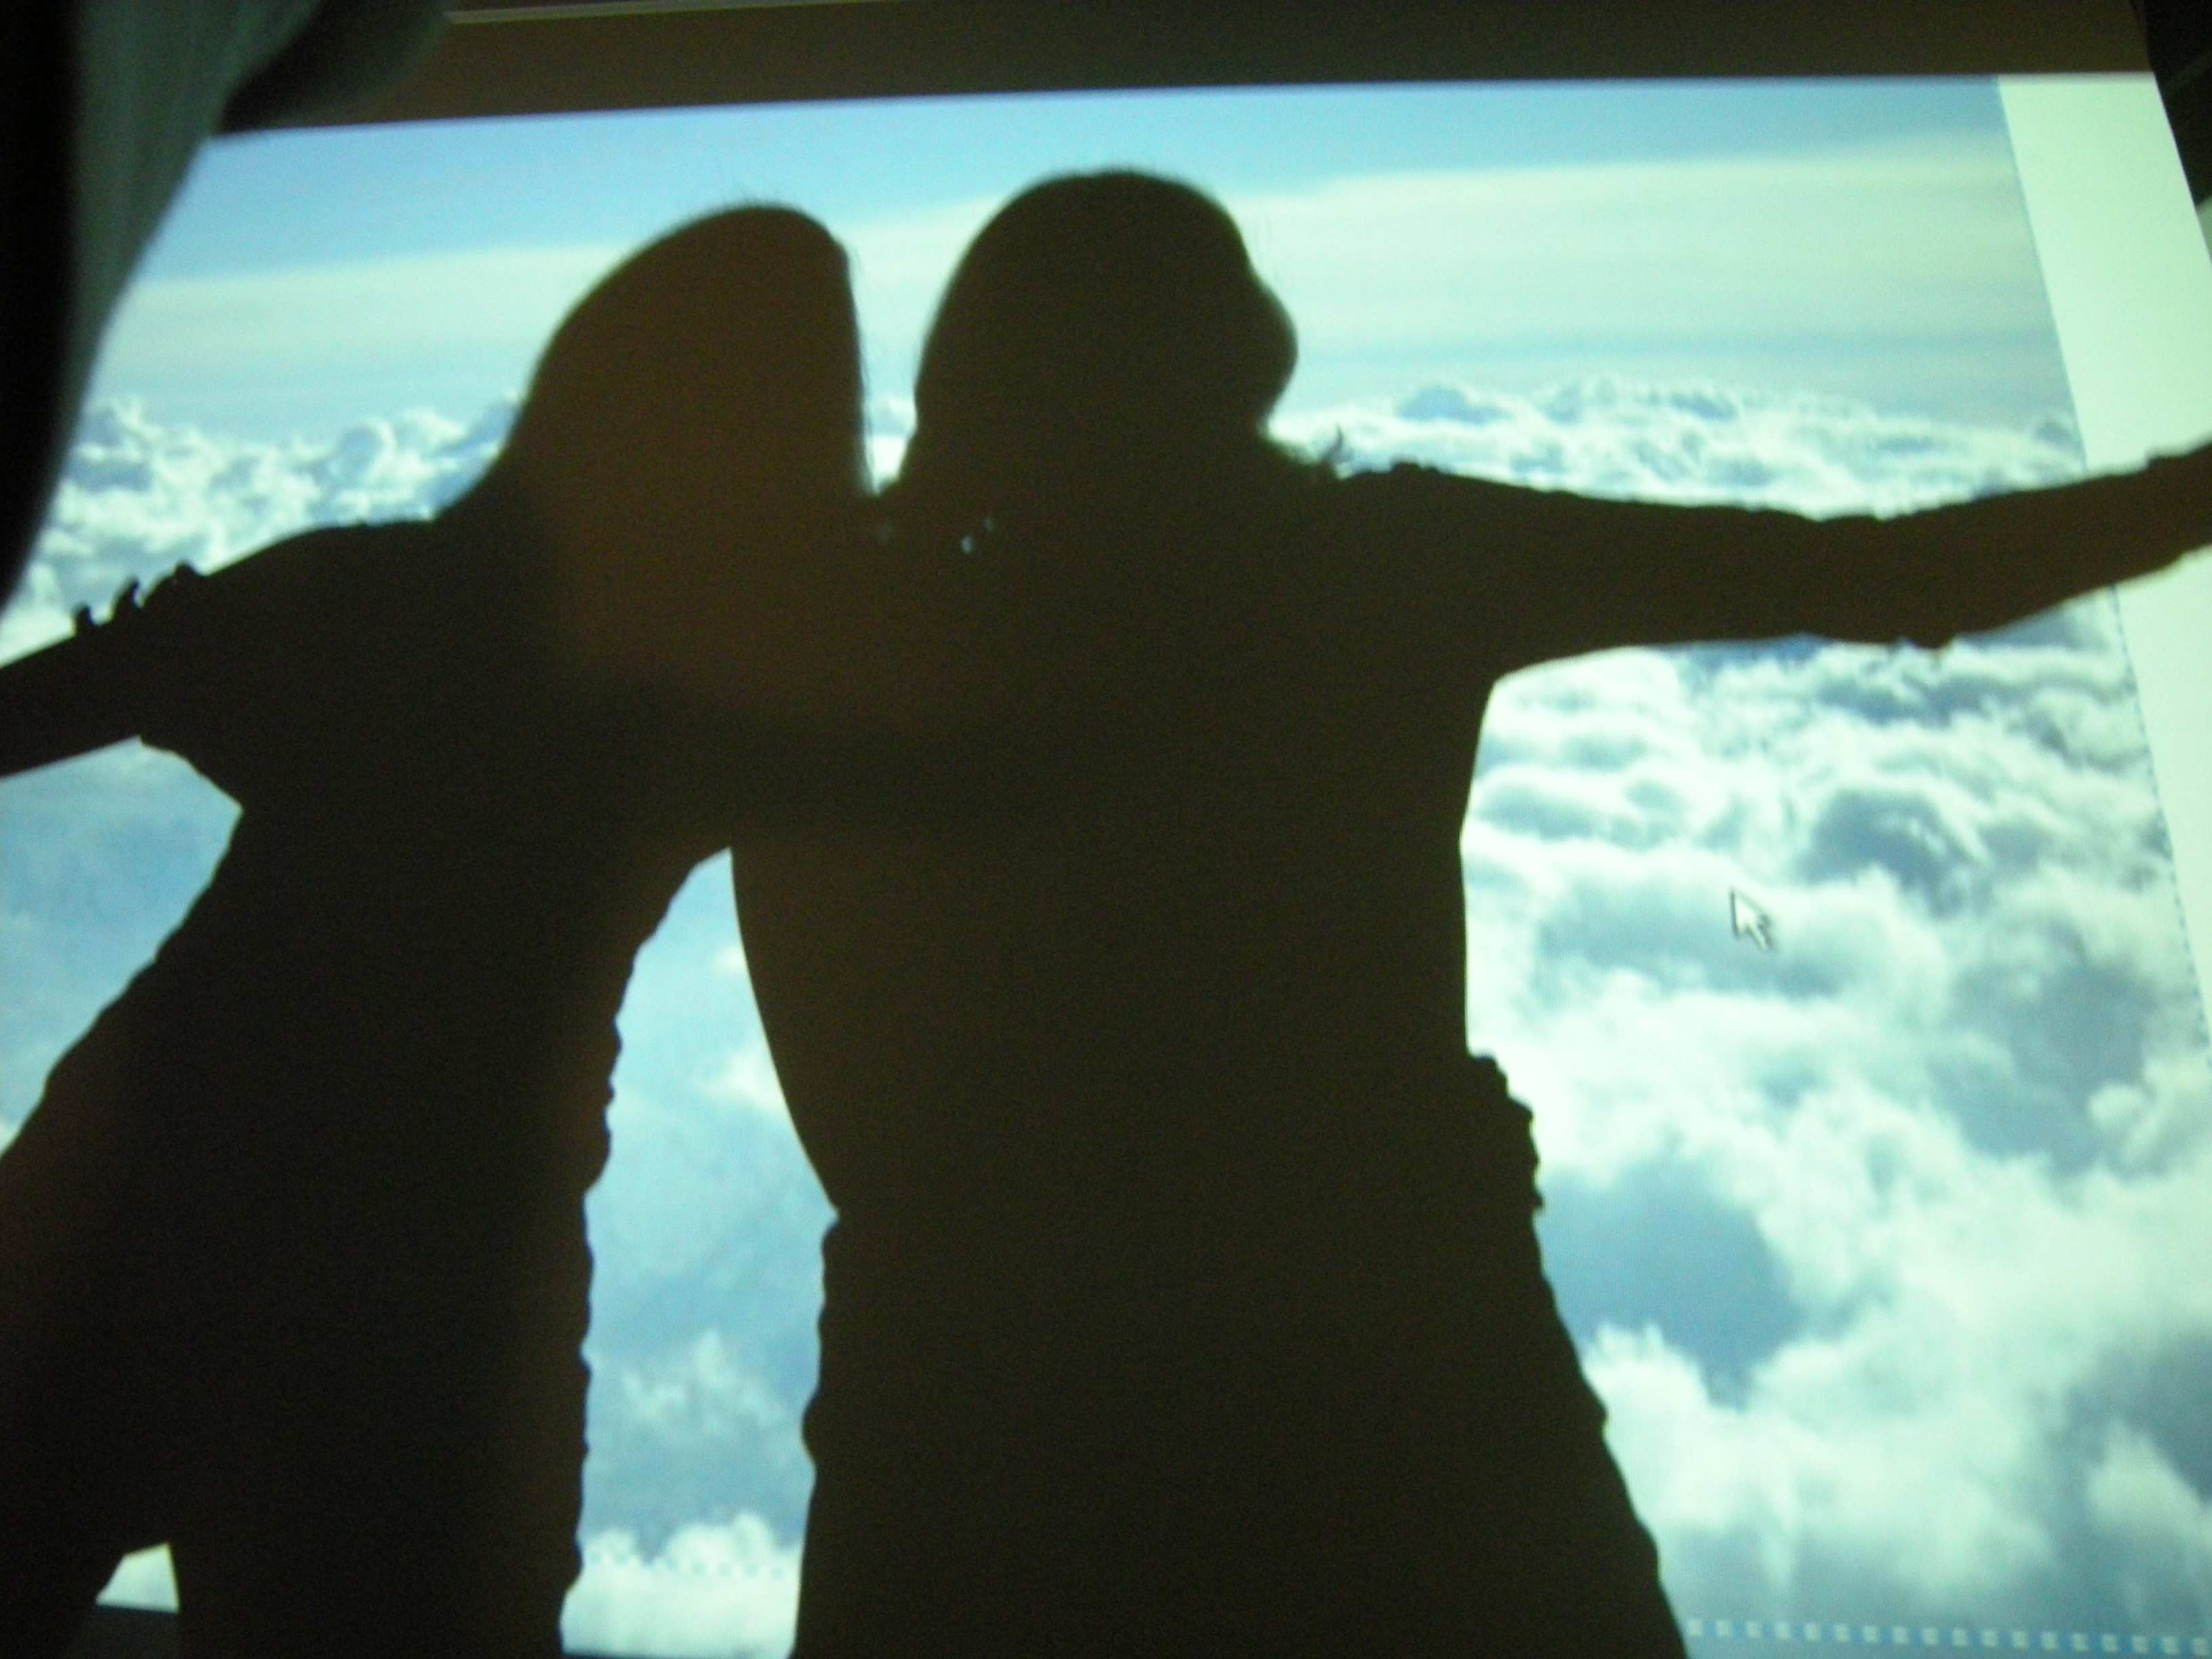 On a screen shadows of two people hugging and spreading their arms are casted. On the screen is a blanket of clouds projected.